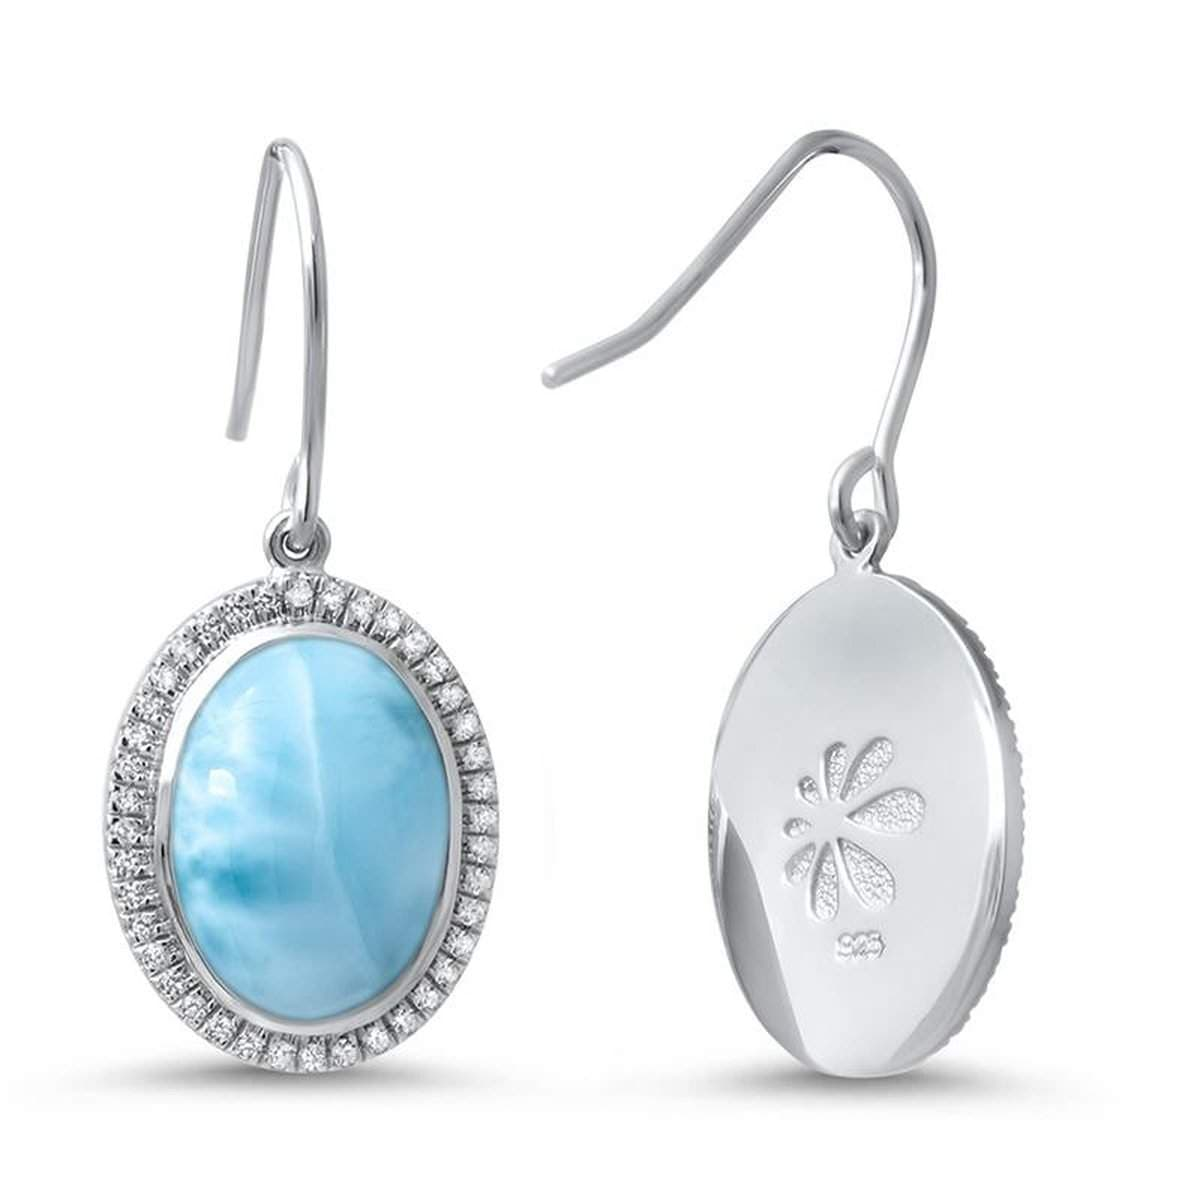 Clarity Oval White Sapphire Earrings - Eclar00-00-Marahlago Larimar-Renee Taylor Gallery